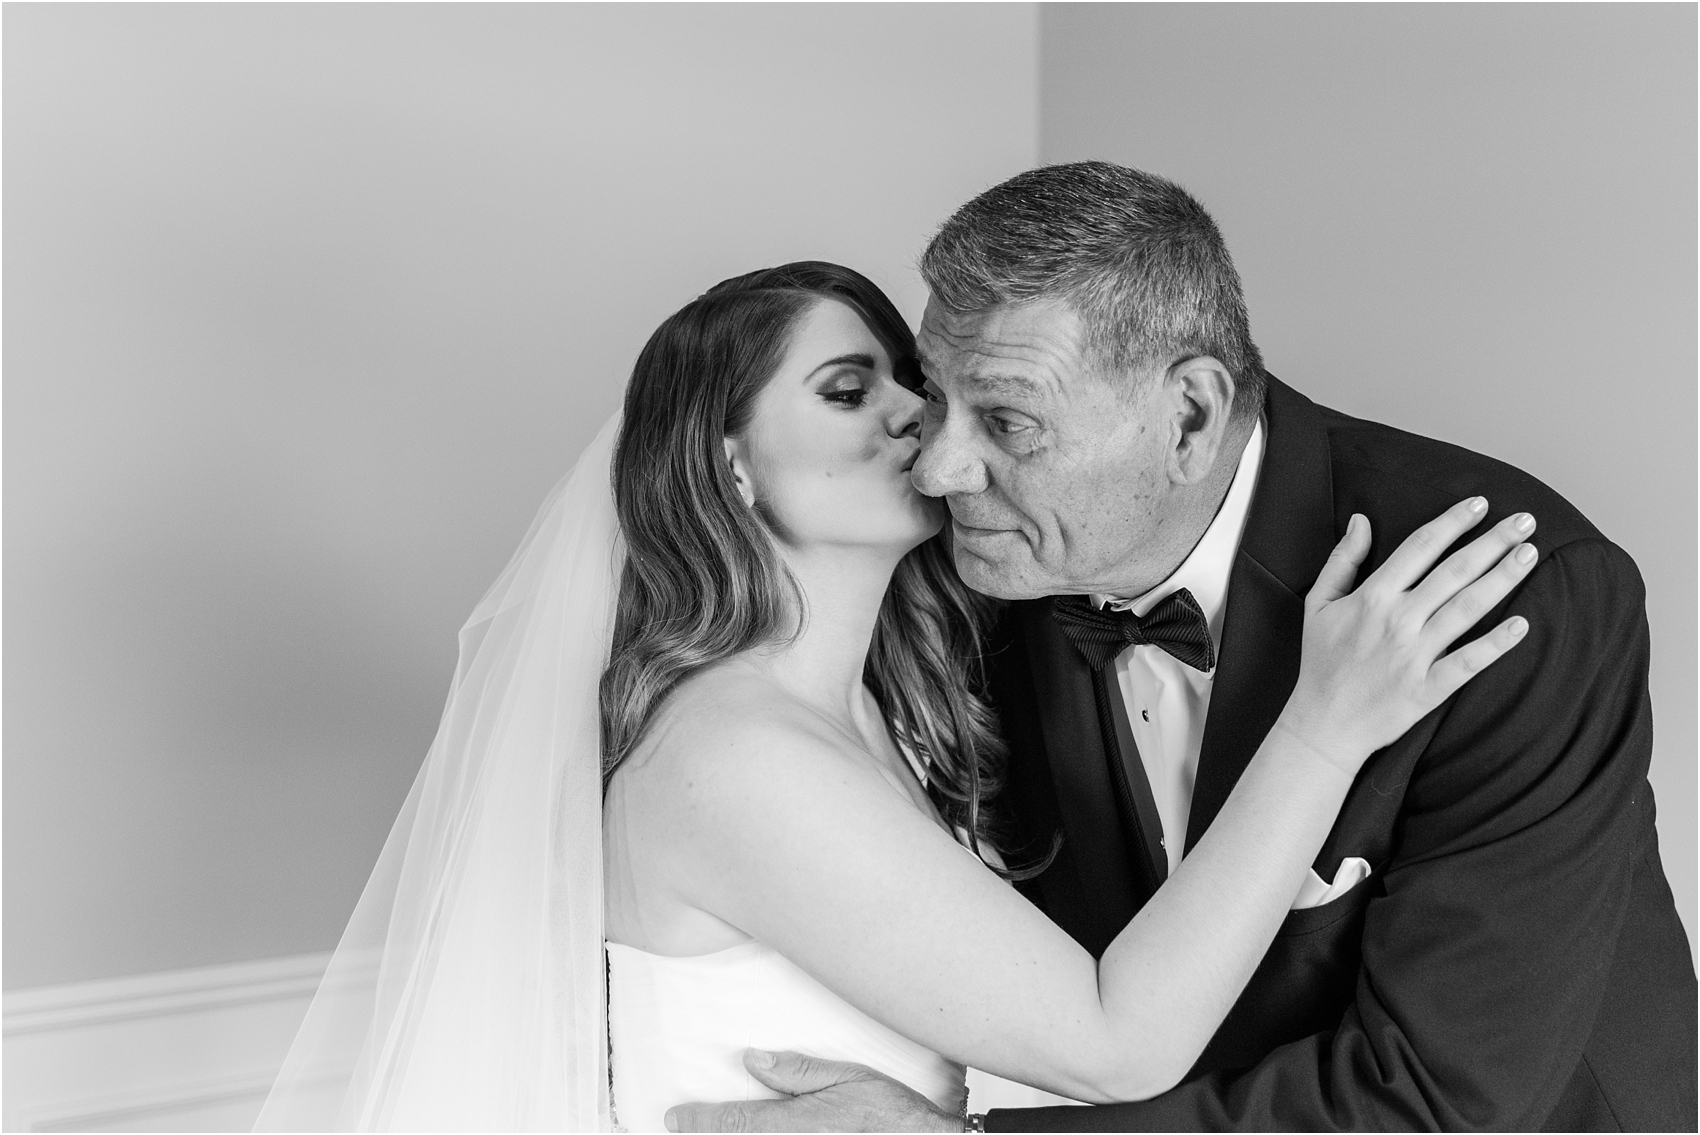 father-and-bride-share-emotional-first-look-on-wedding-day-photos-in-detroit-michigan-by-courtney-carolyn-photography_0021.jpg